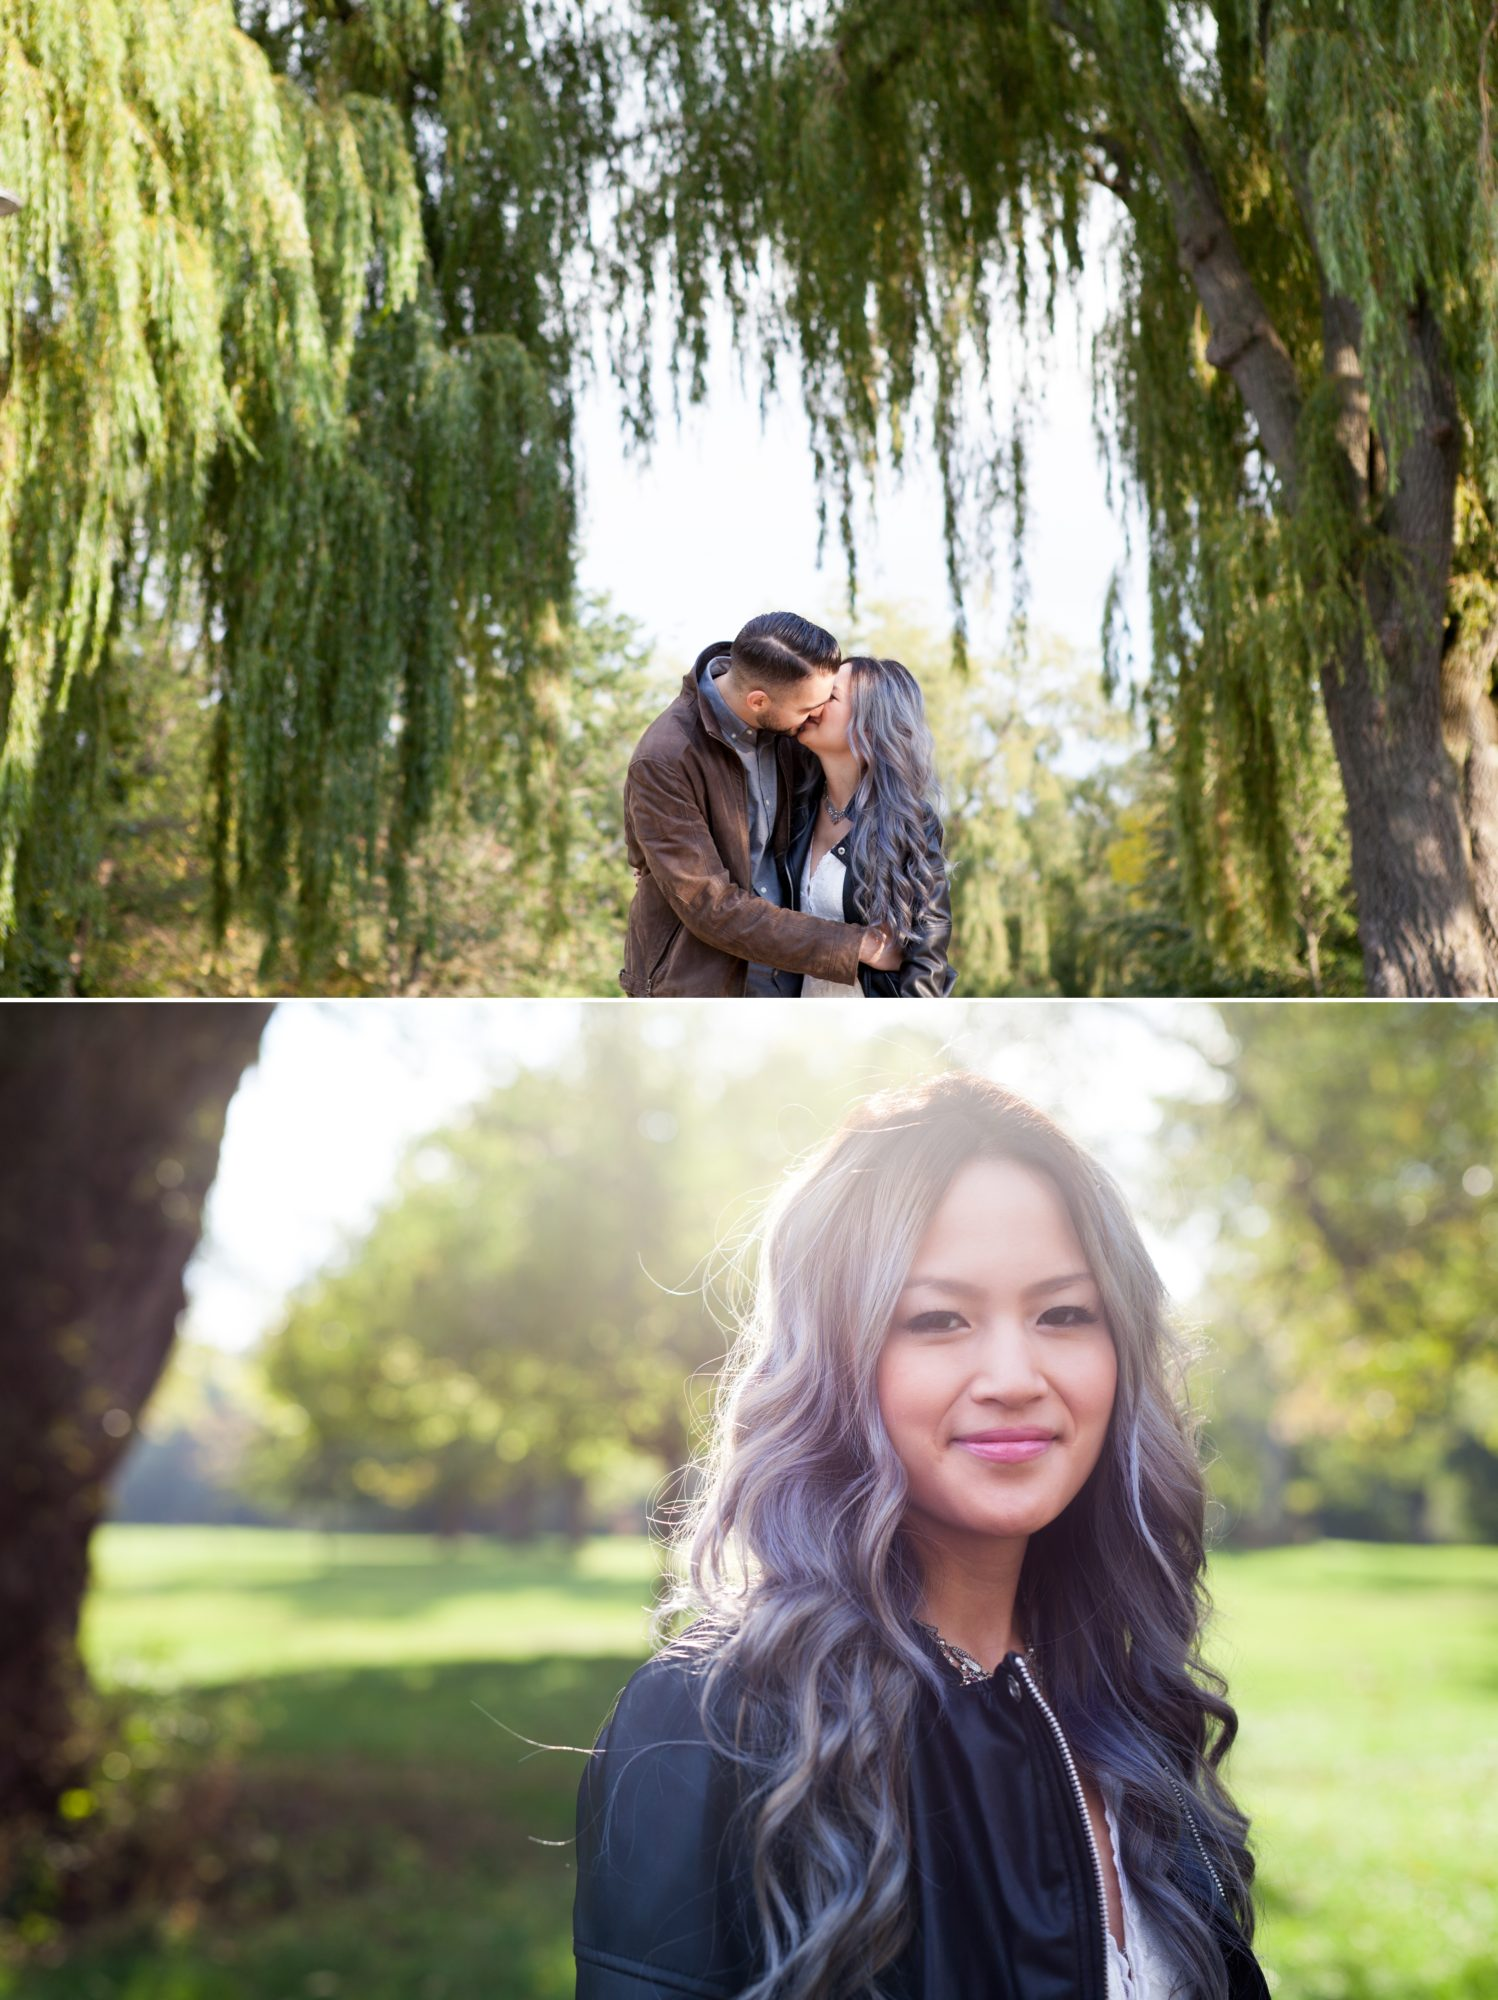 Willow Trees Sunlight Toronto Island Engagement Shoot Zsuzsi Pal Photography